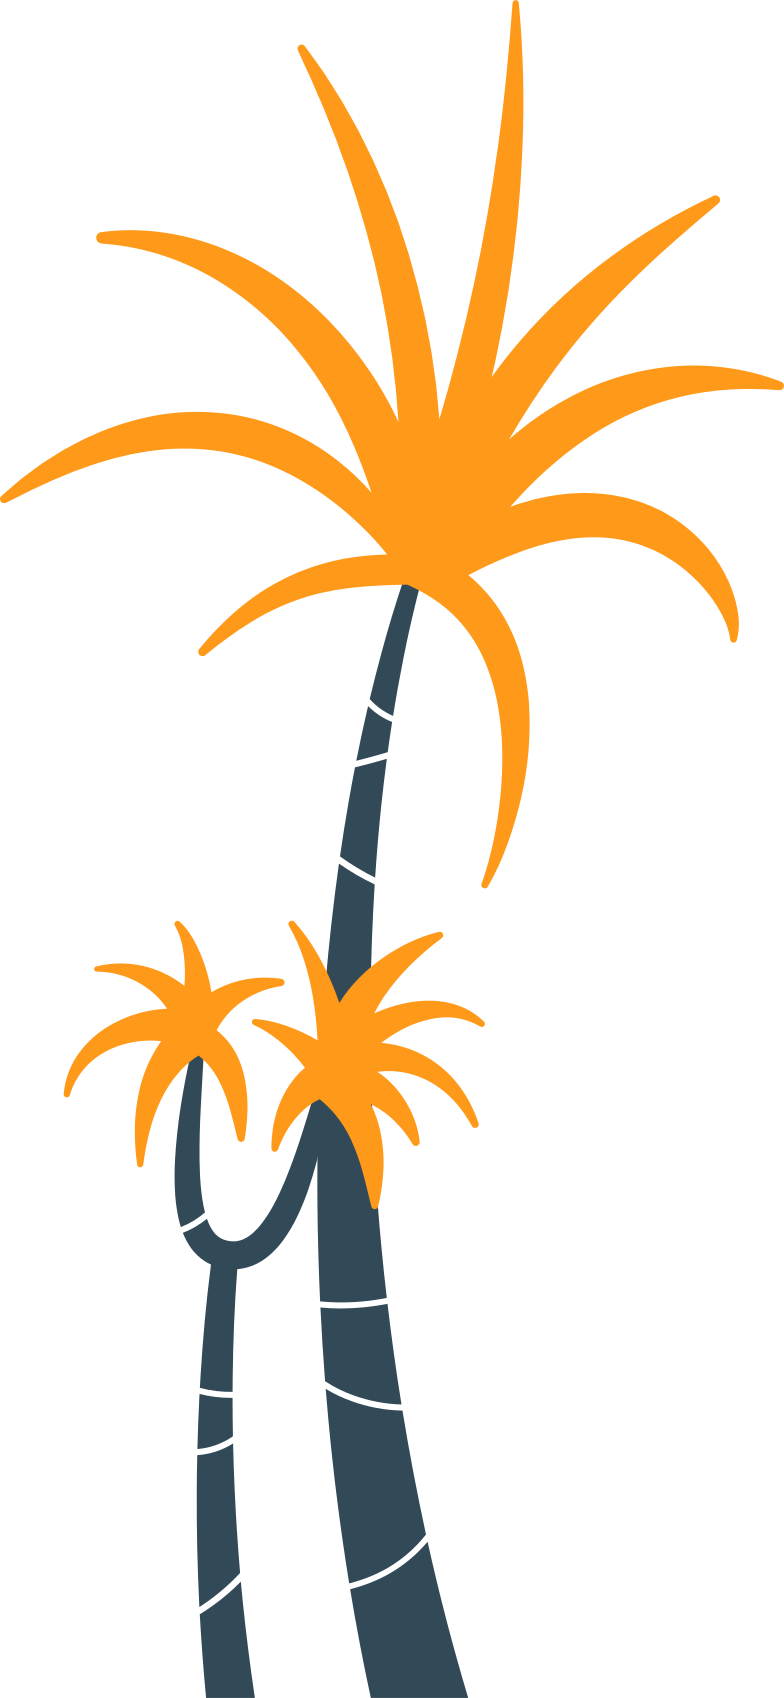 style palm trees Vector images in PNG and SVG | Icons8 Illustrations